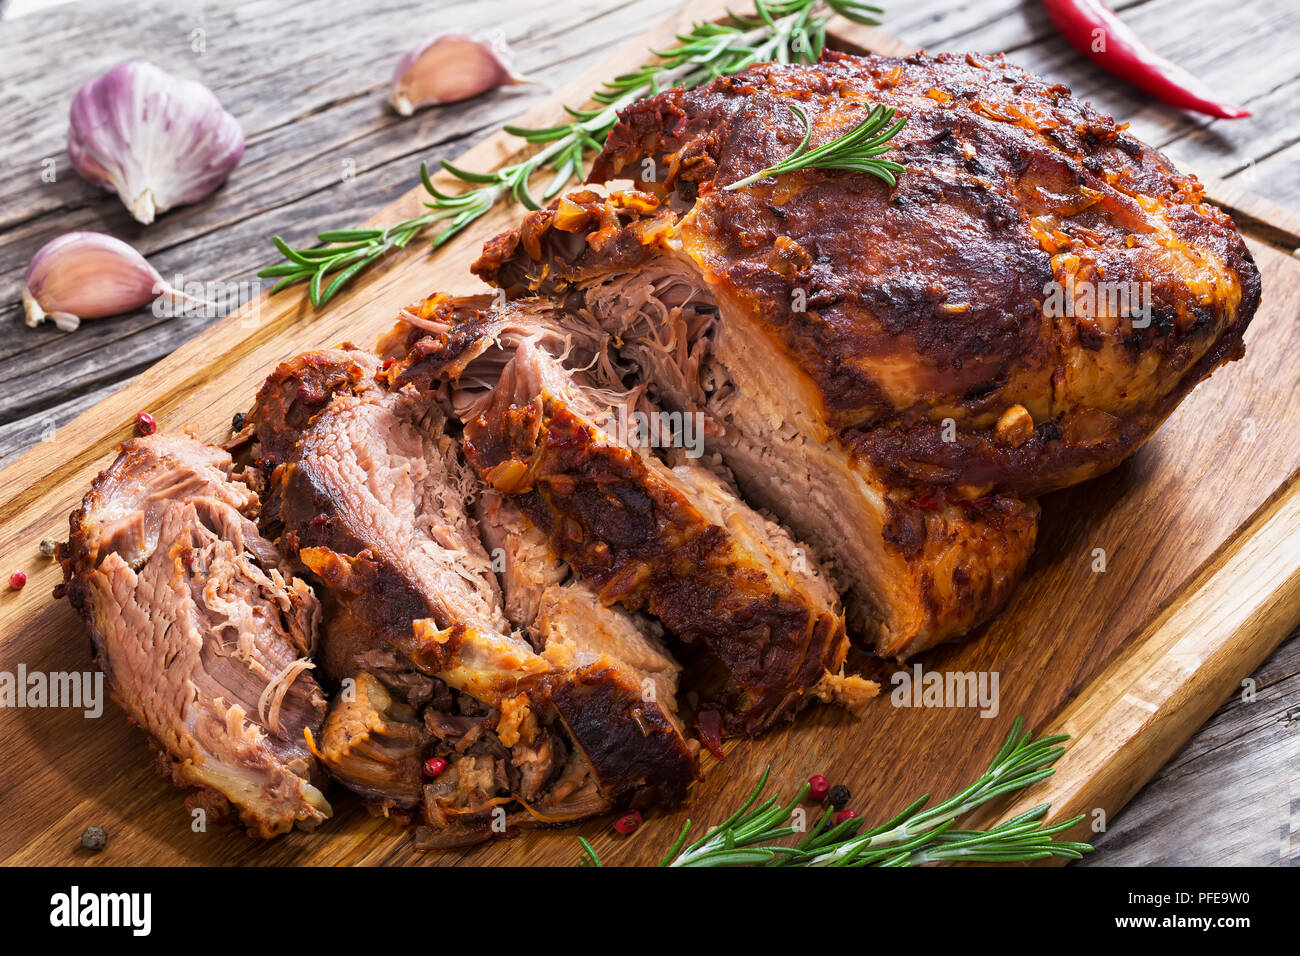 Big Piece of Slow Cooked Oven-Barbecued Pulled Pork shoulder on chopping board with mixed peppercorns, rosemary, garlic,chili on wooden planks, view f - Stock Image